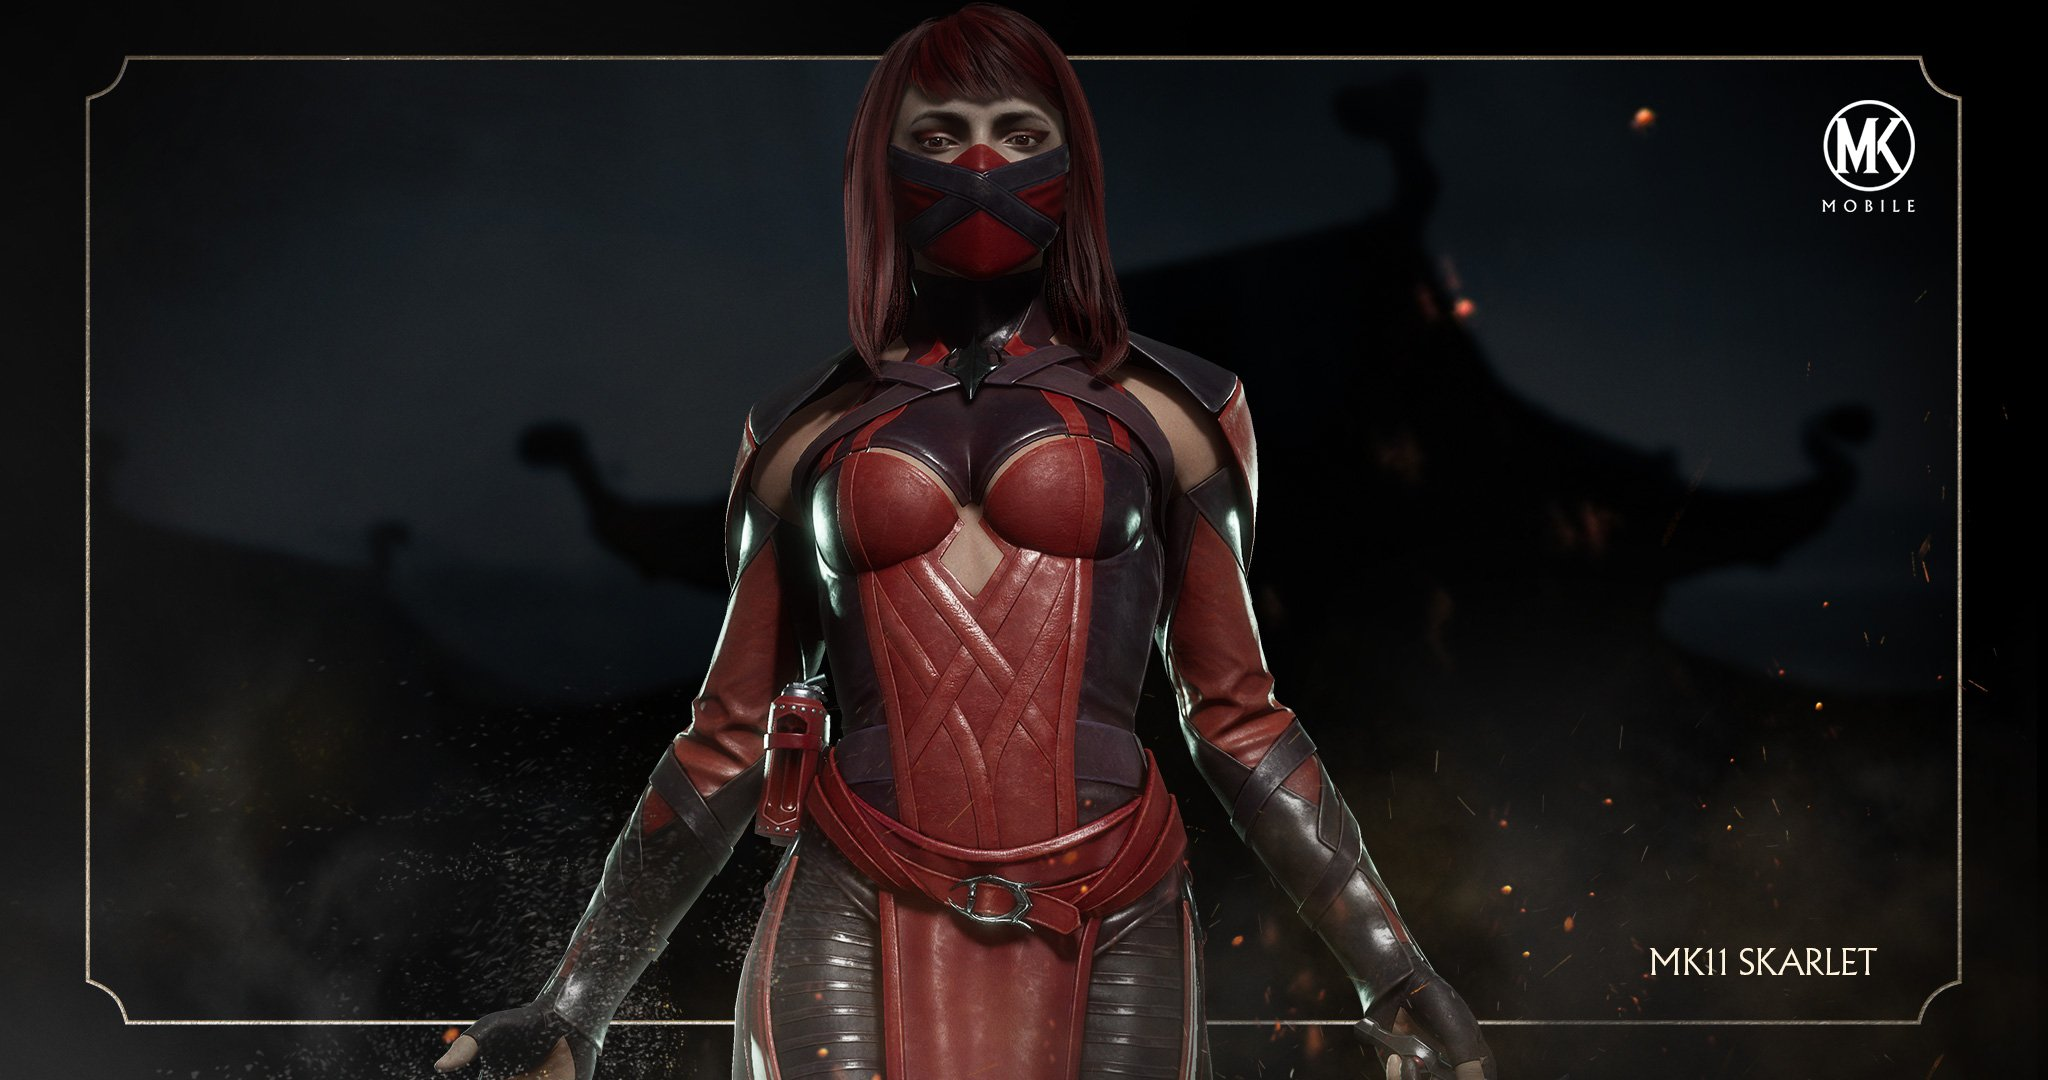 Mortal Kombat Mobile background - Skarlet